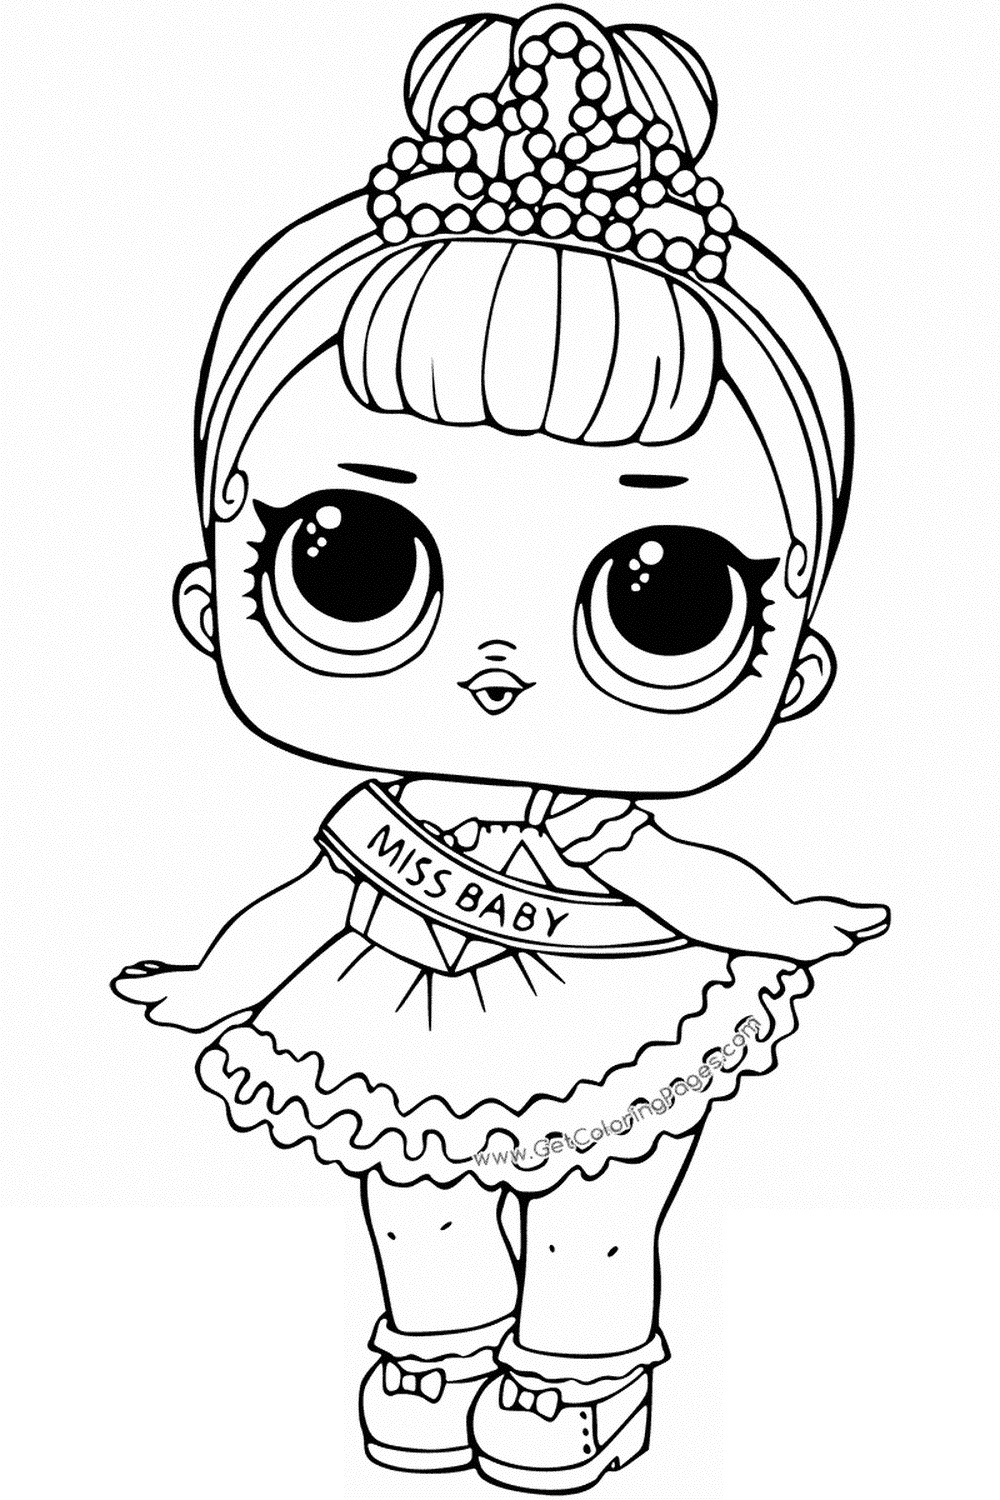 Coloring Pages Of Lol Surprise Dolls 80 Pieces Of Black And